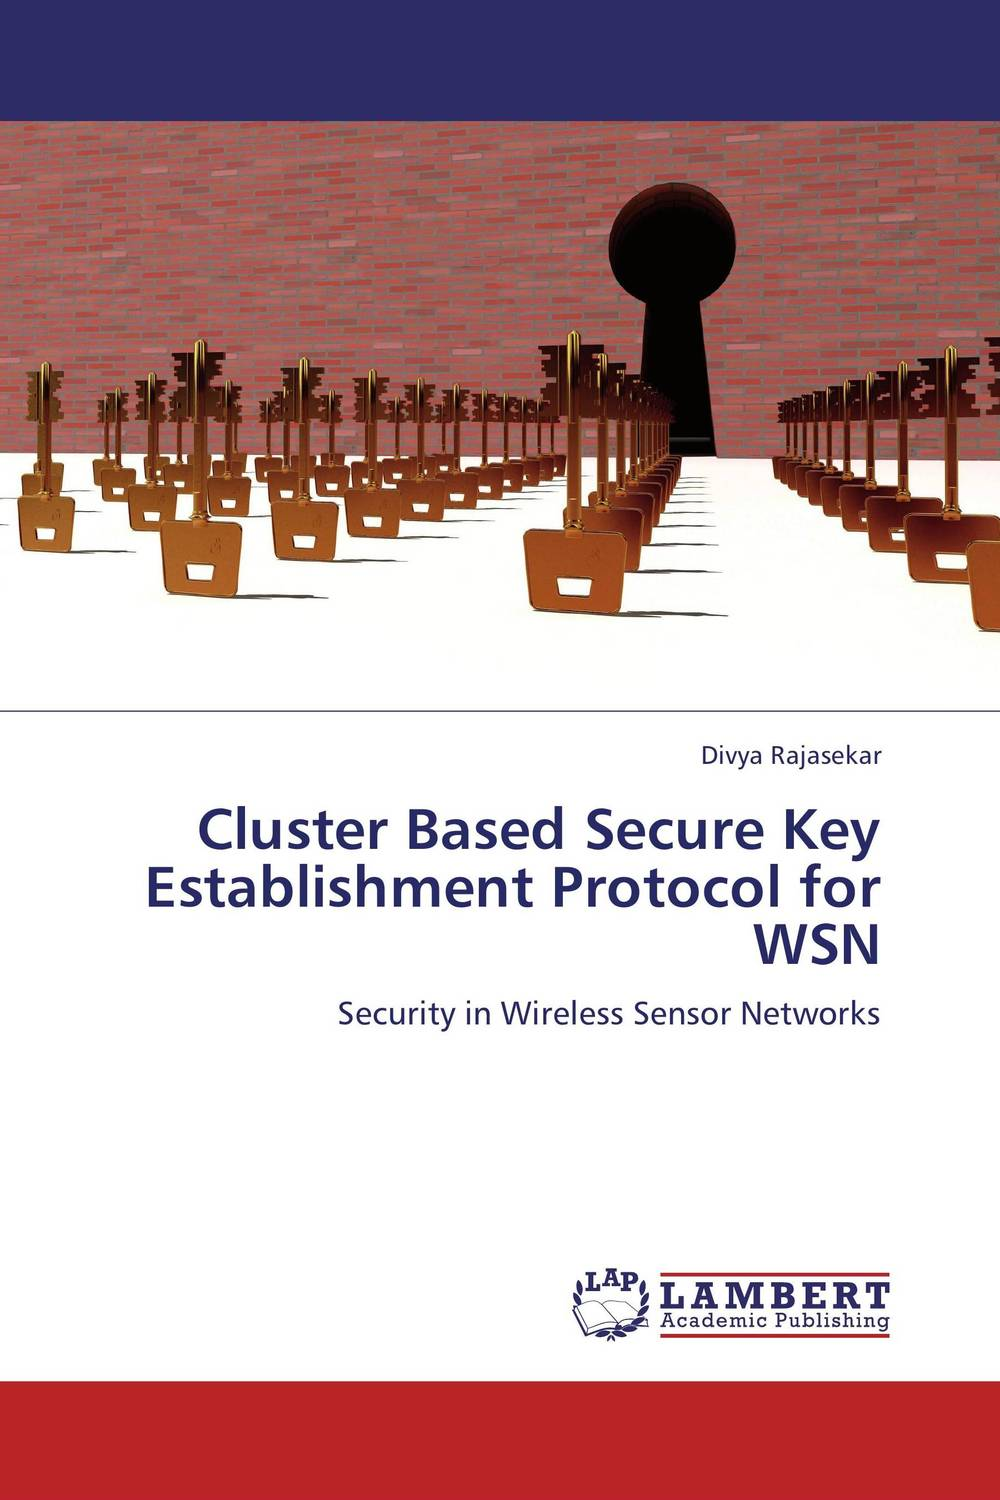 Cluster Based Secure Key Establishment Protocol for WSN heena dhawan a heterogenous clustering protocol in wsn href leach protocol